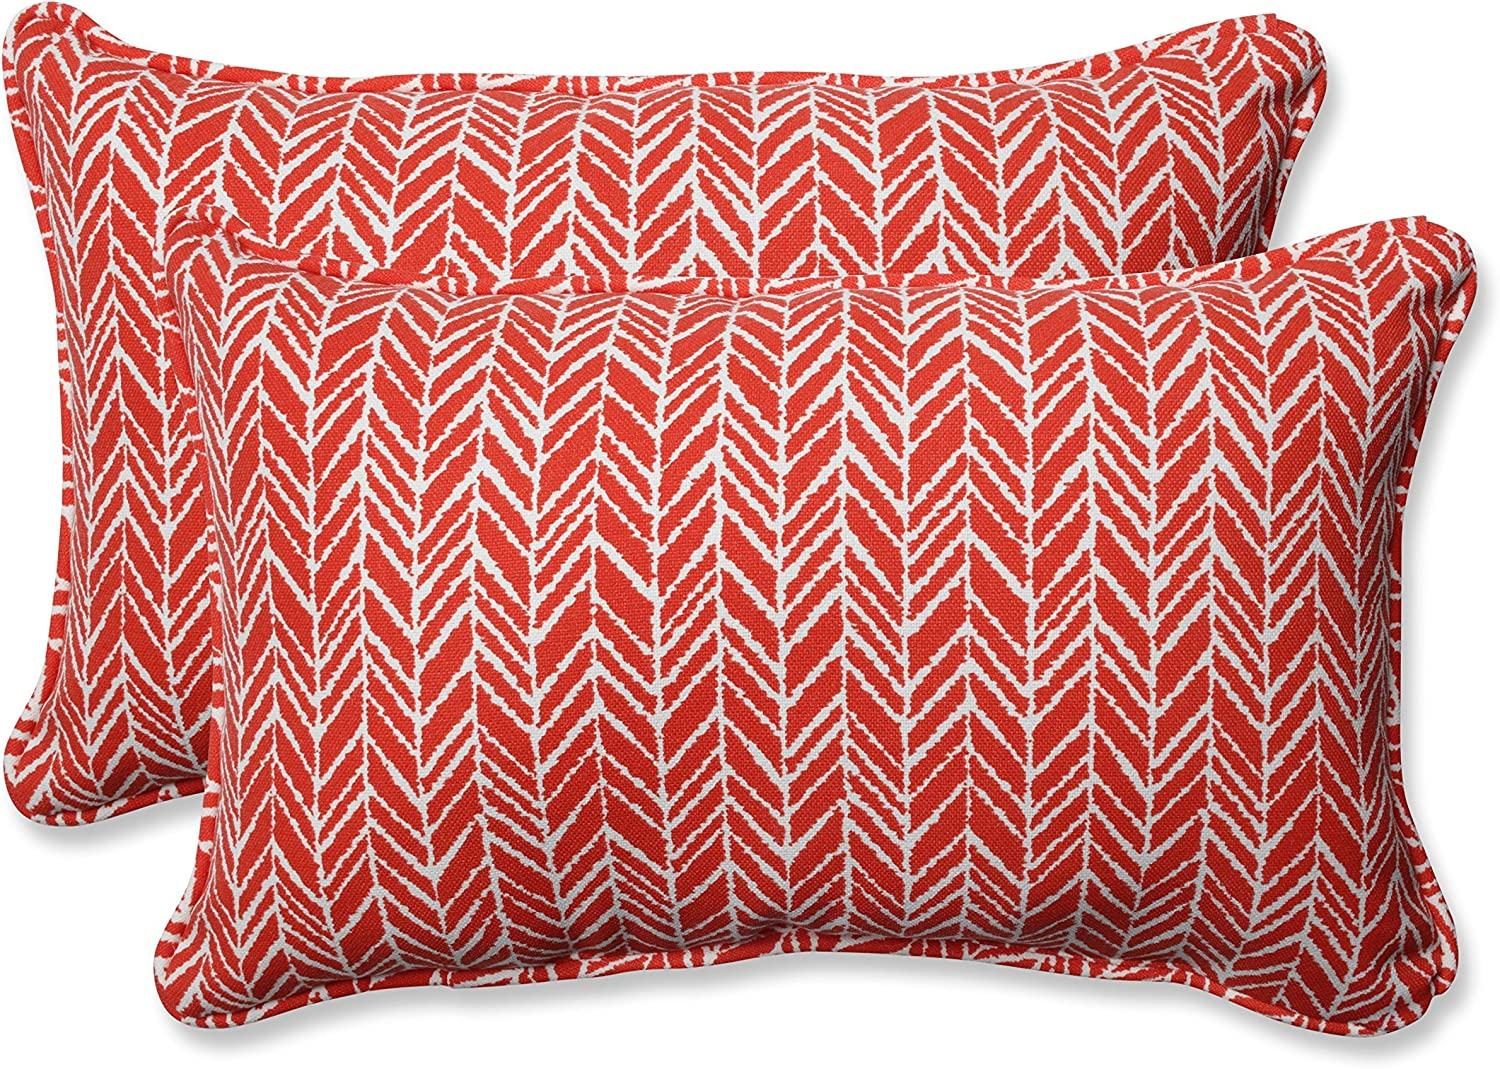 Pillow Perfect Outdoor Indoor Herringbone Tomato Rectangular Throw Pil, 2 Piece